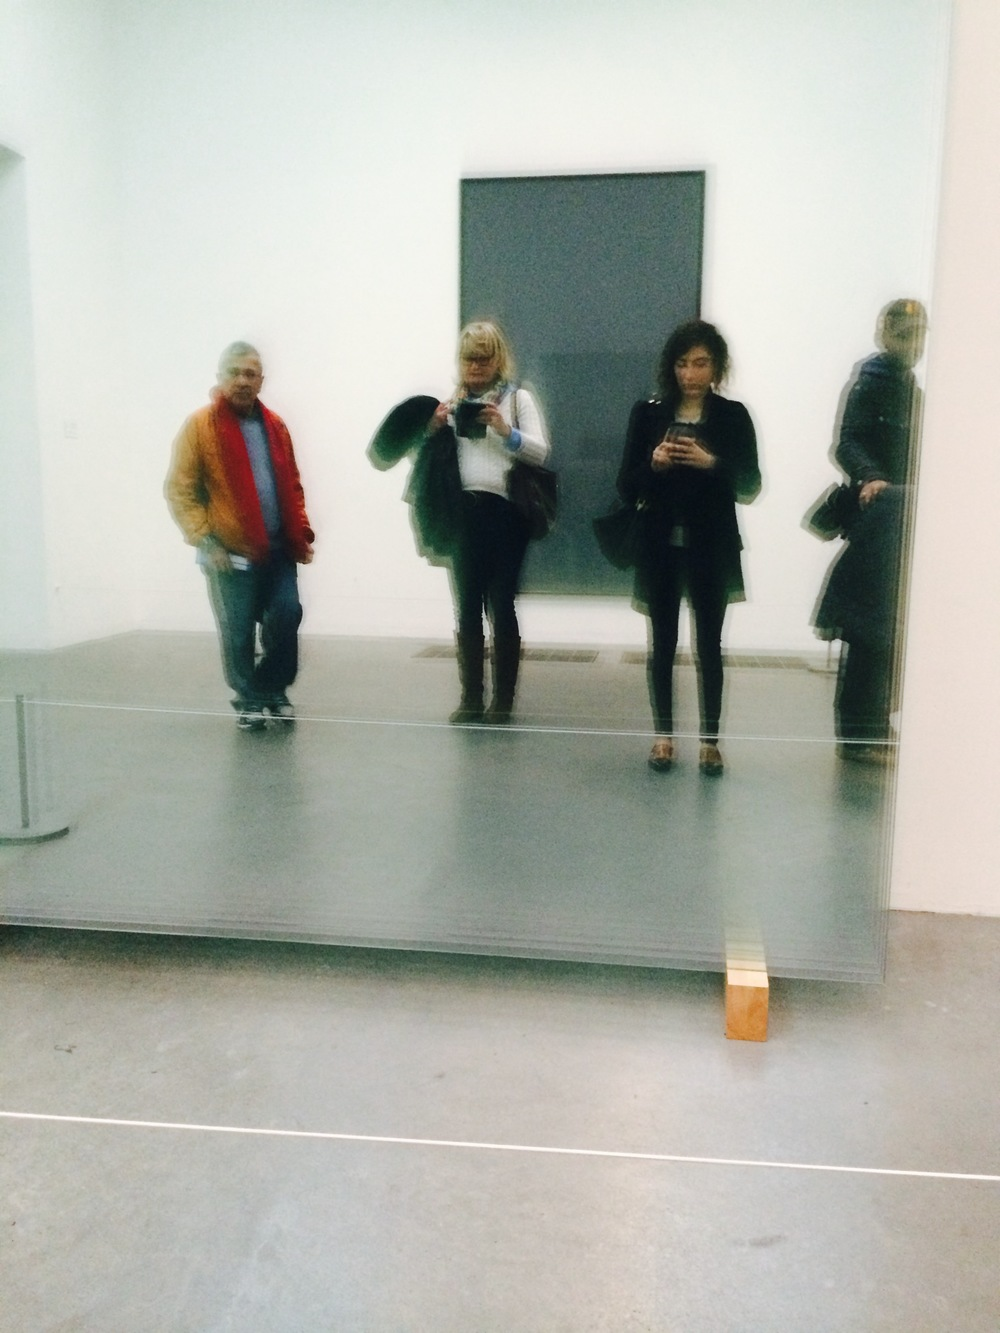 Selfie Taken at the Tate Modern in the reflection of Gerhard Ricter's 11 Panes 2004 Glass and Wood